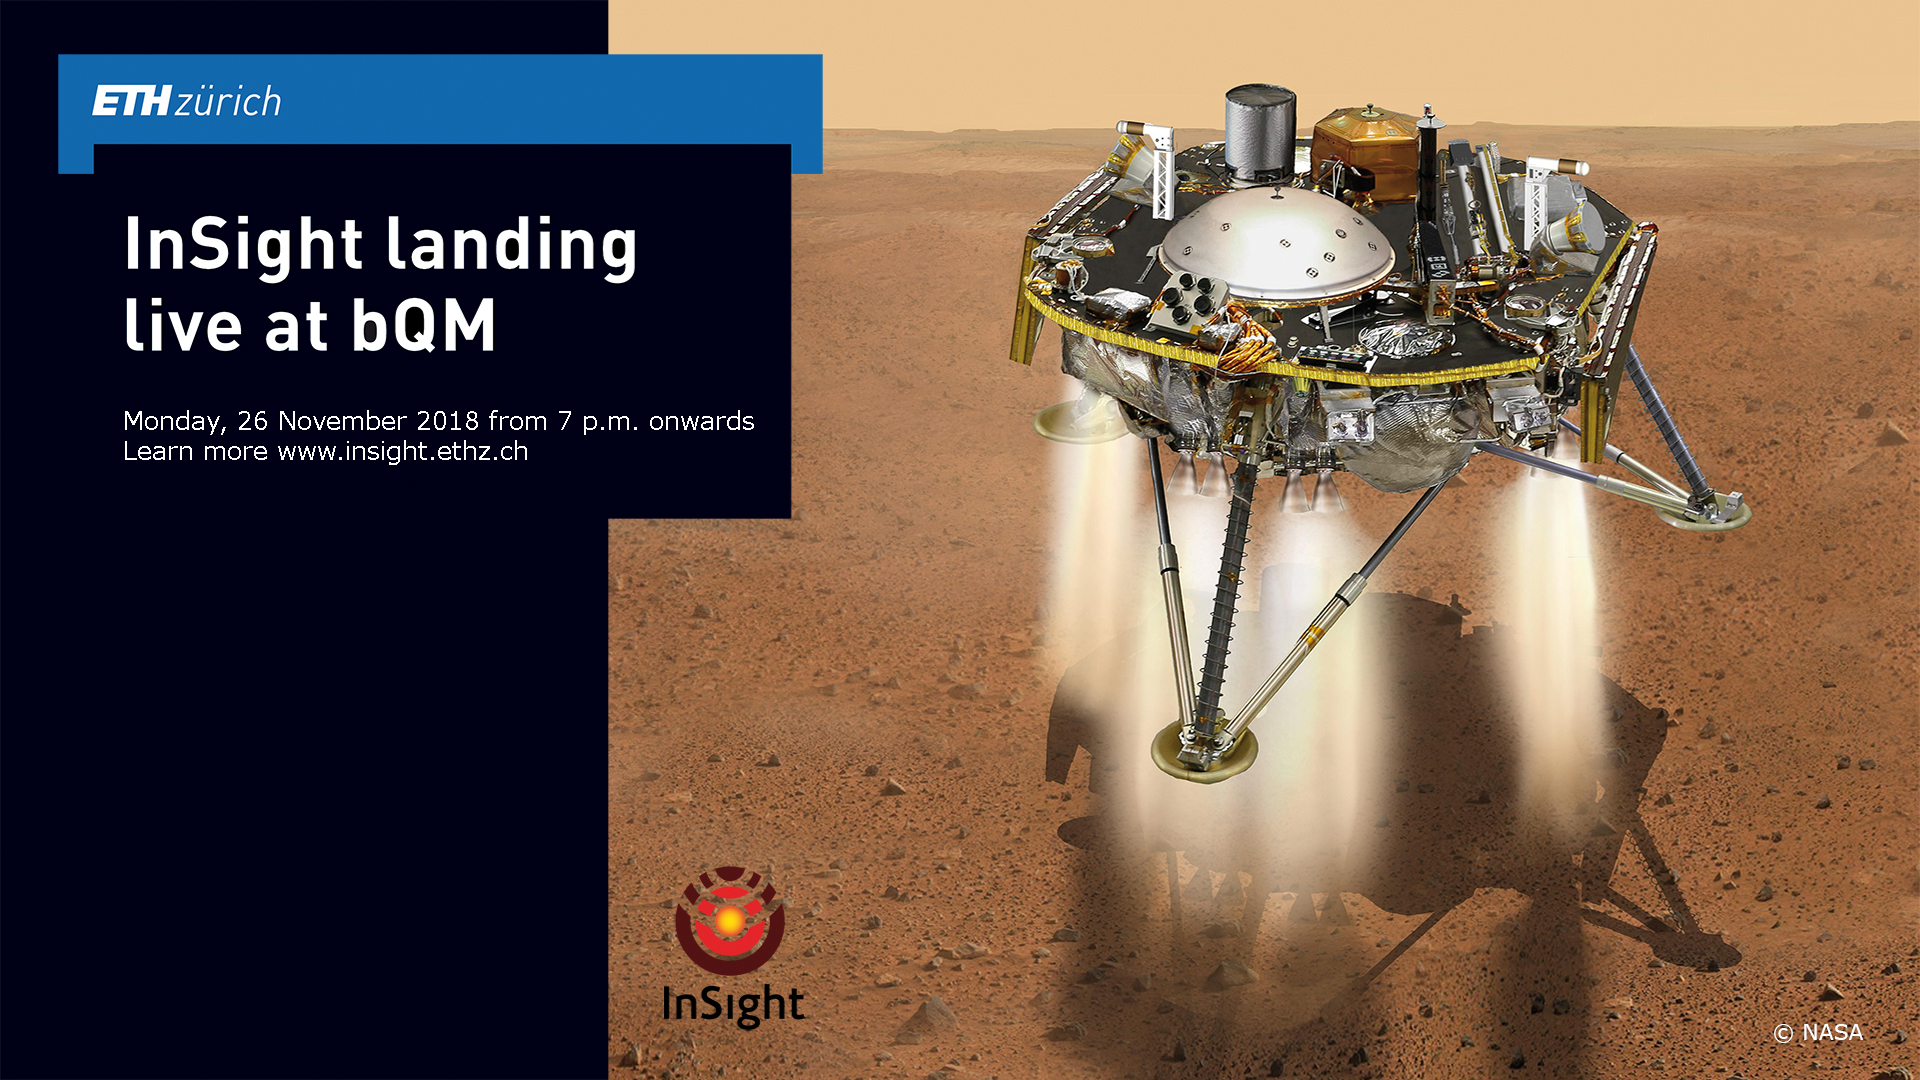 InSight landing live at bQm